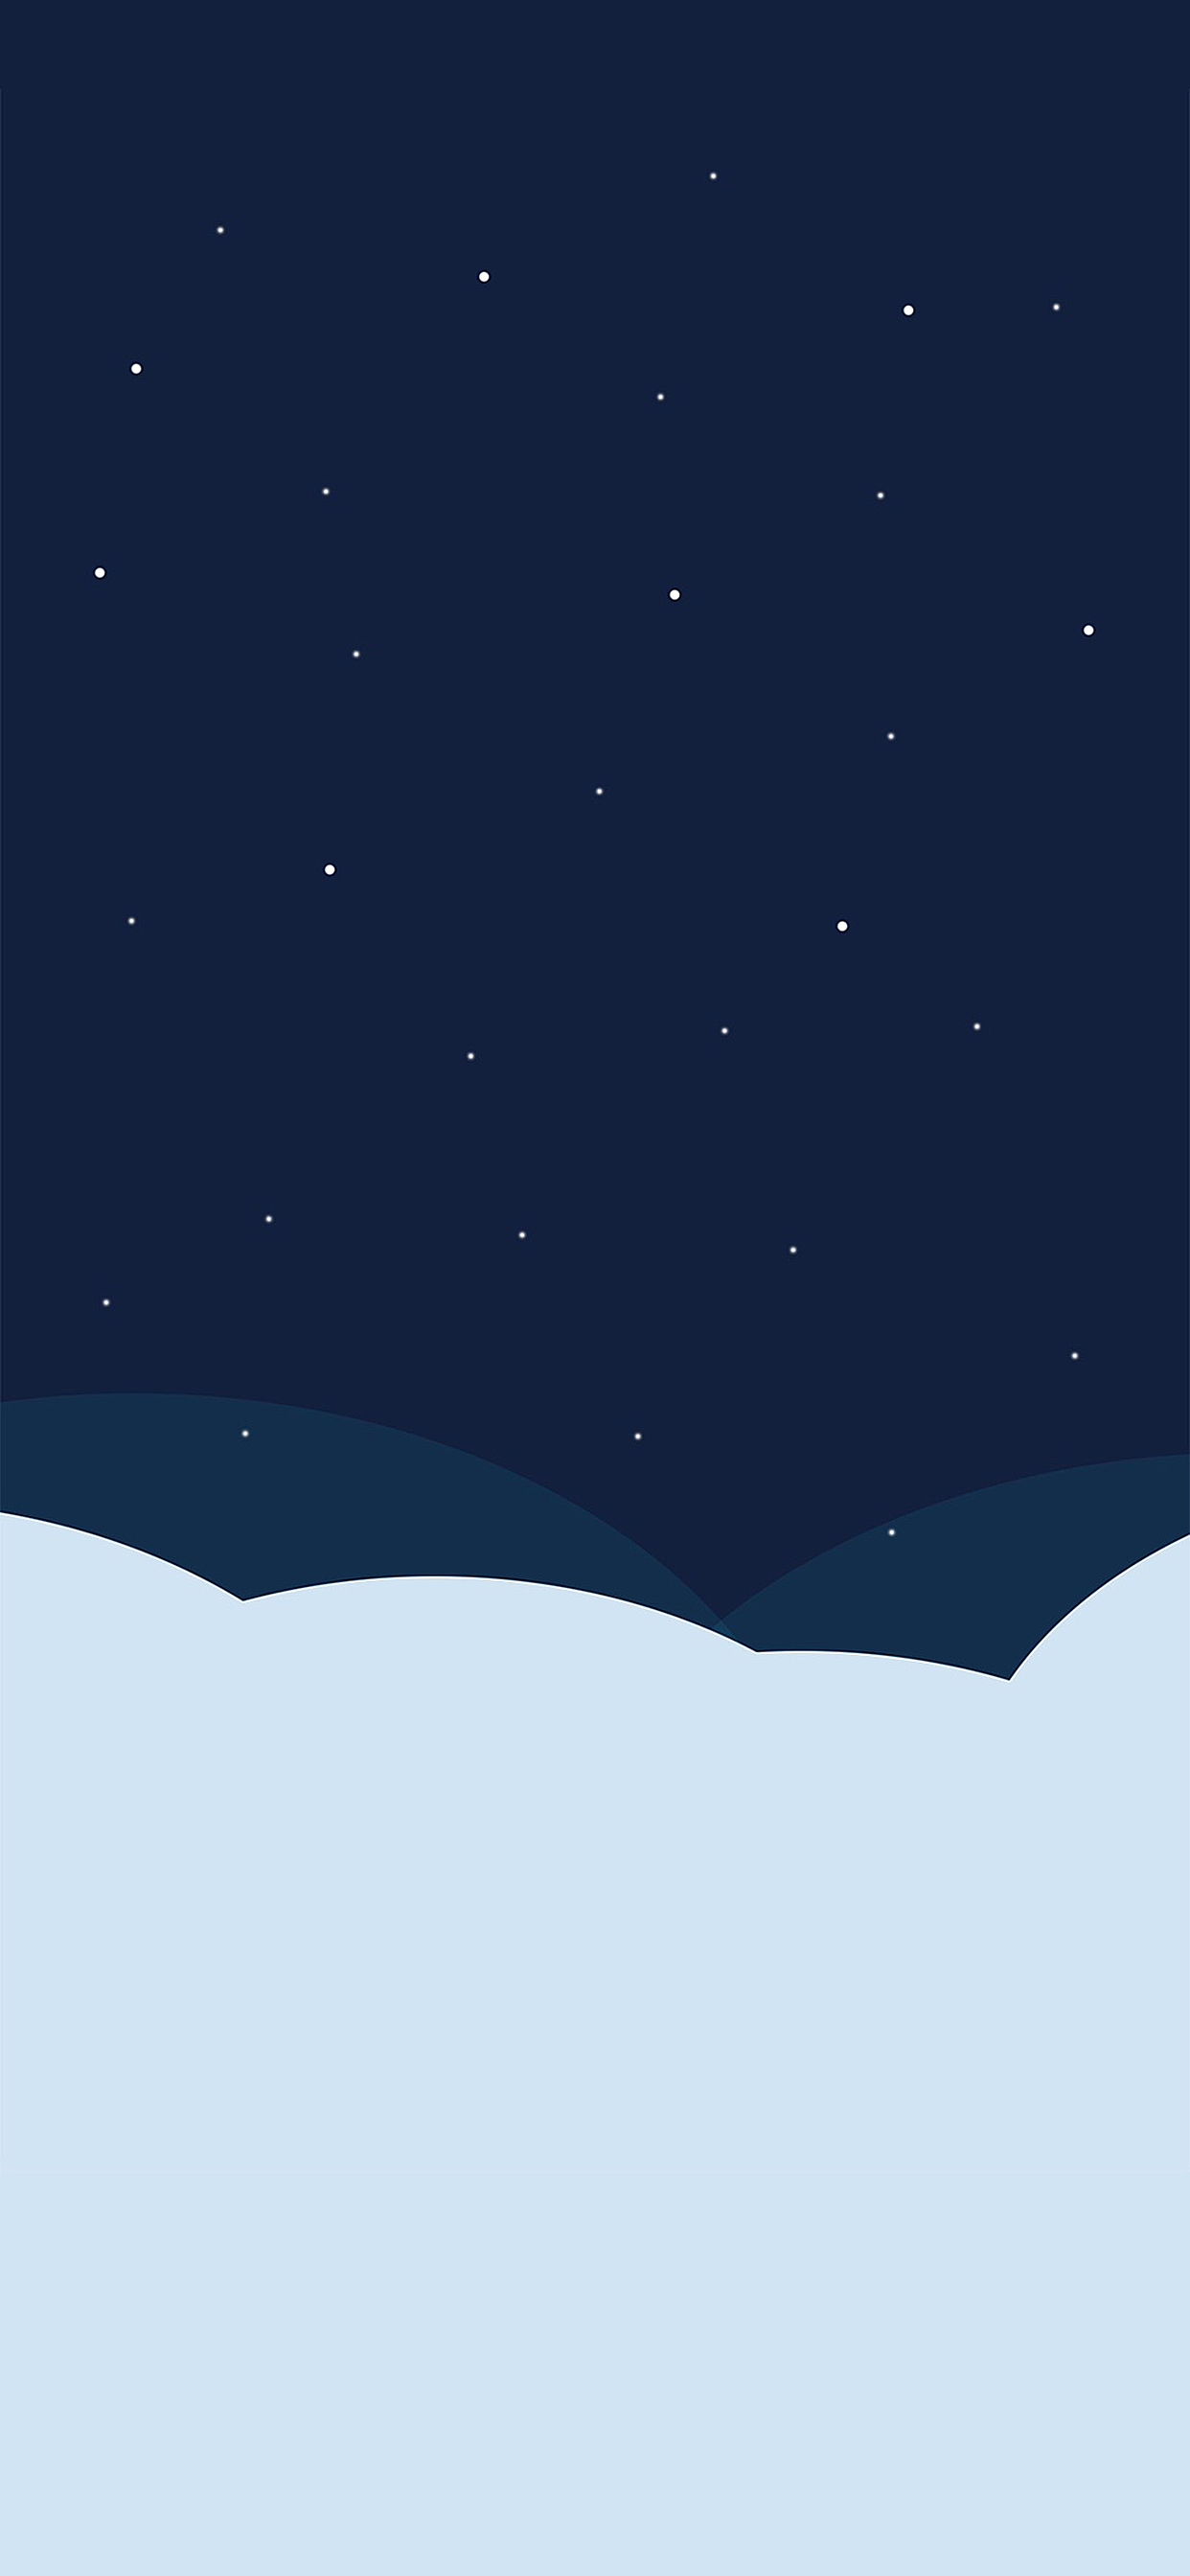 Snowy Winter Christmas Wallpapers For Iphone